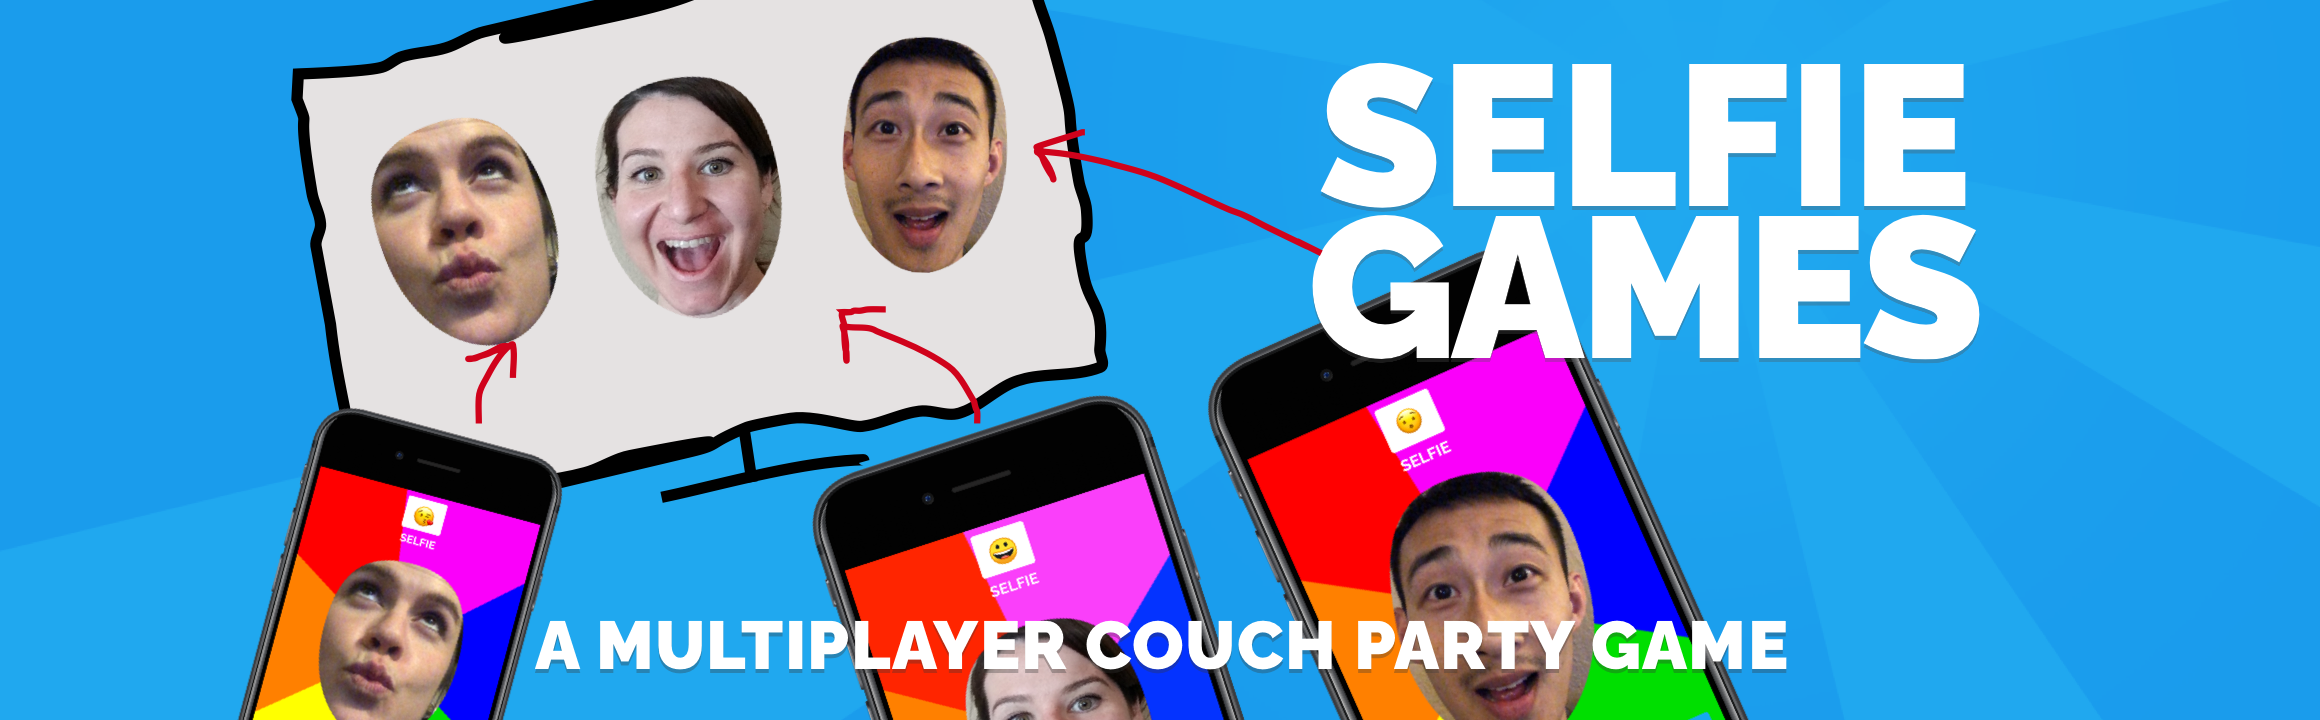 Selfie Games [TV]: A Multiplayer Couch Party Game